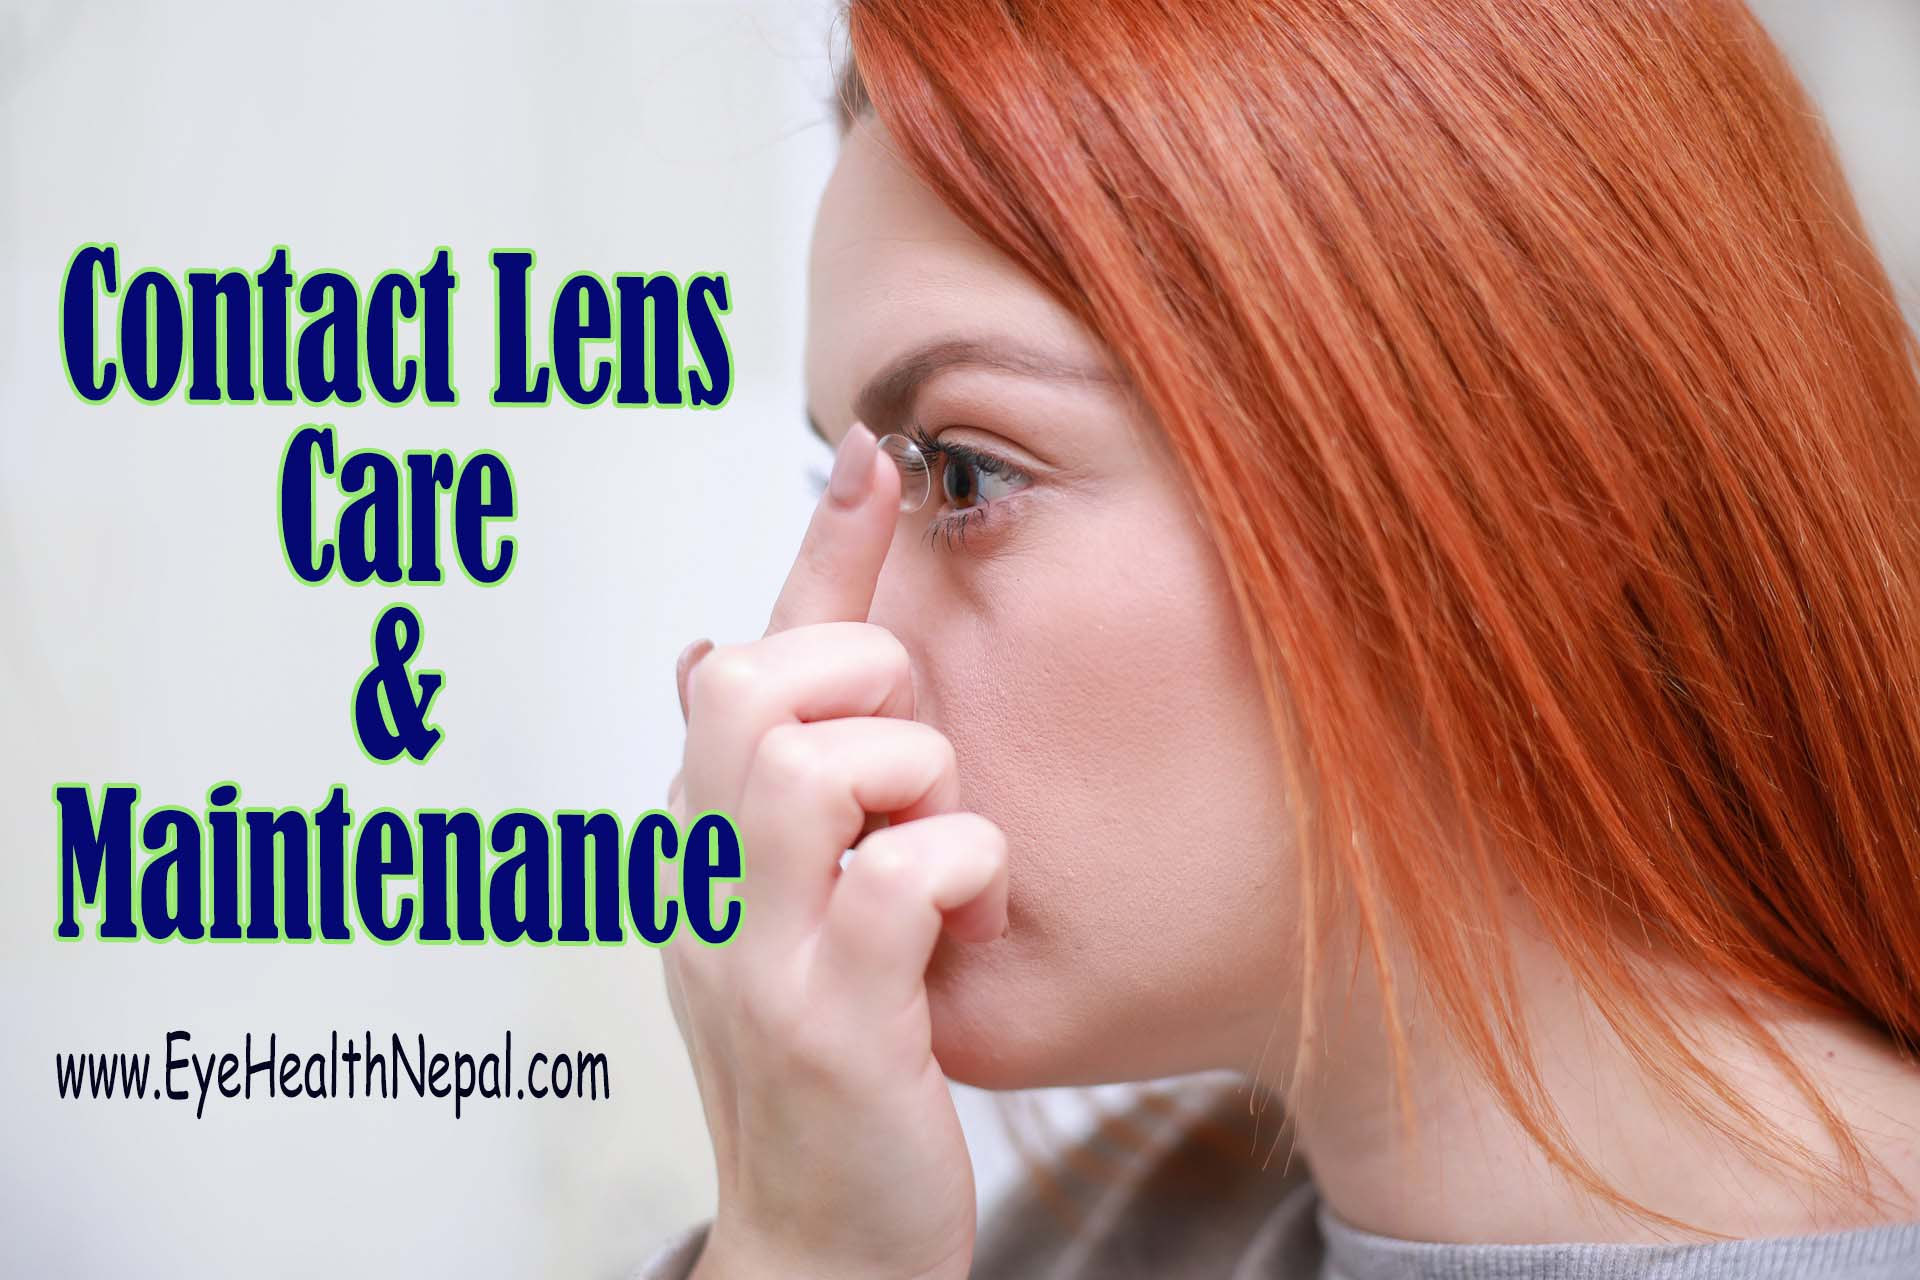 Contact Lens Care and Maintenance